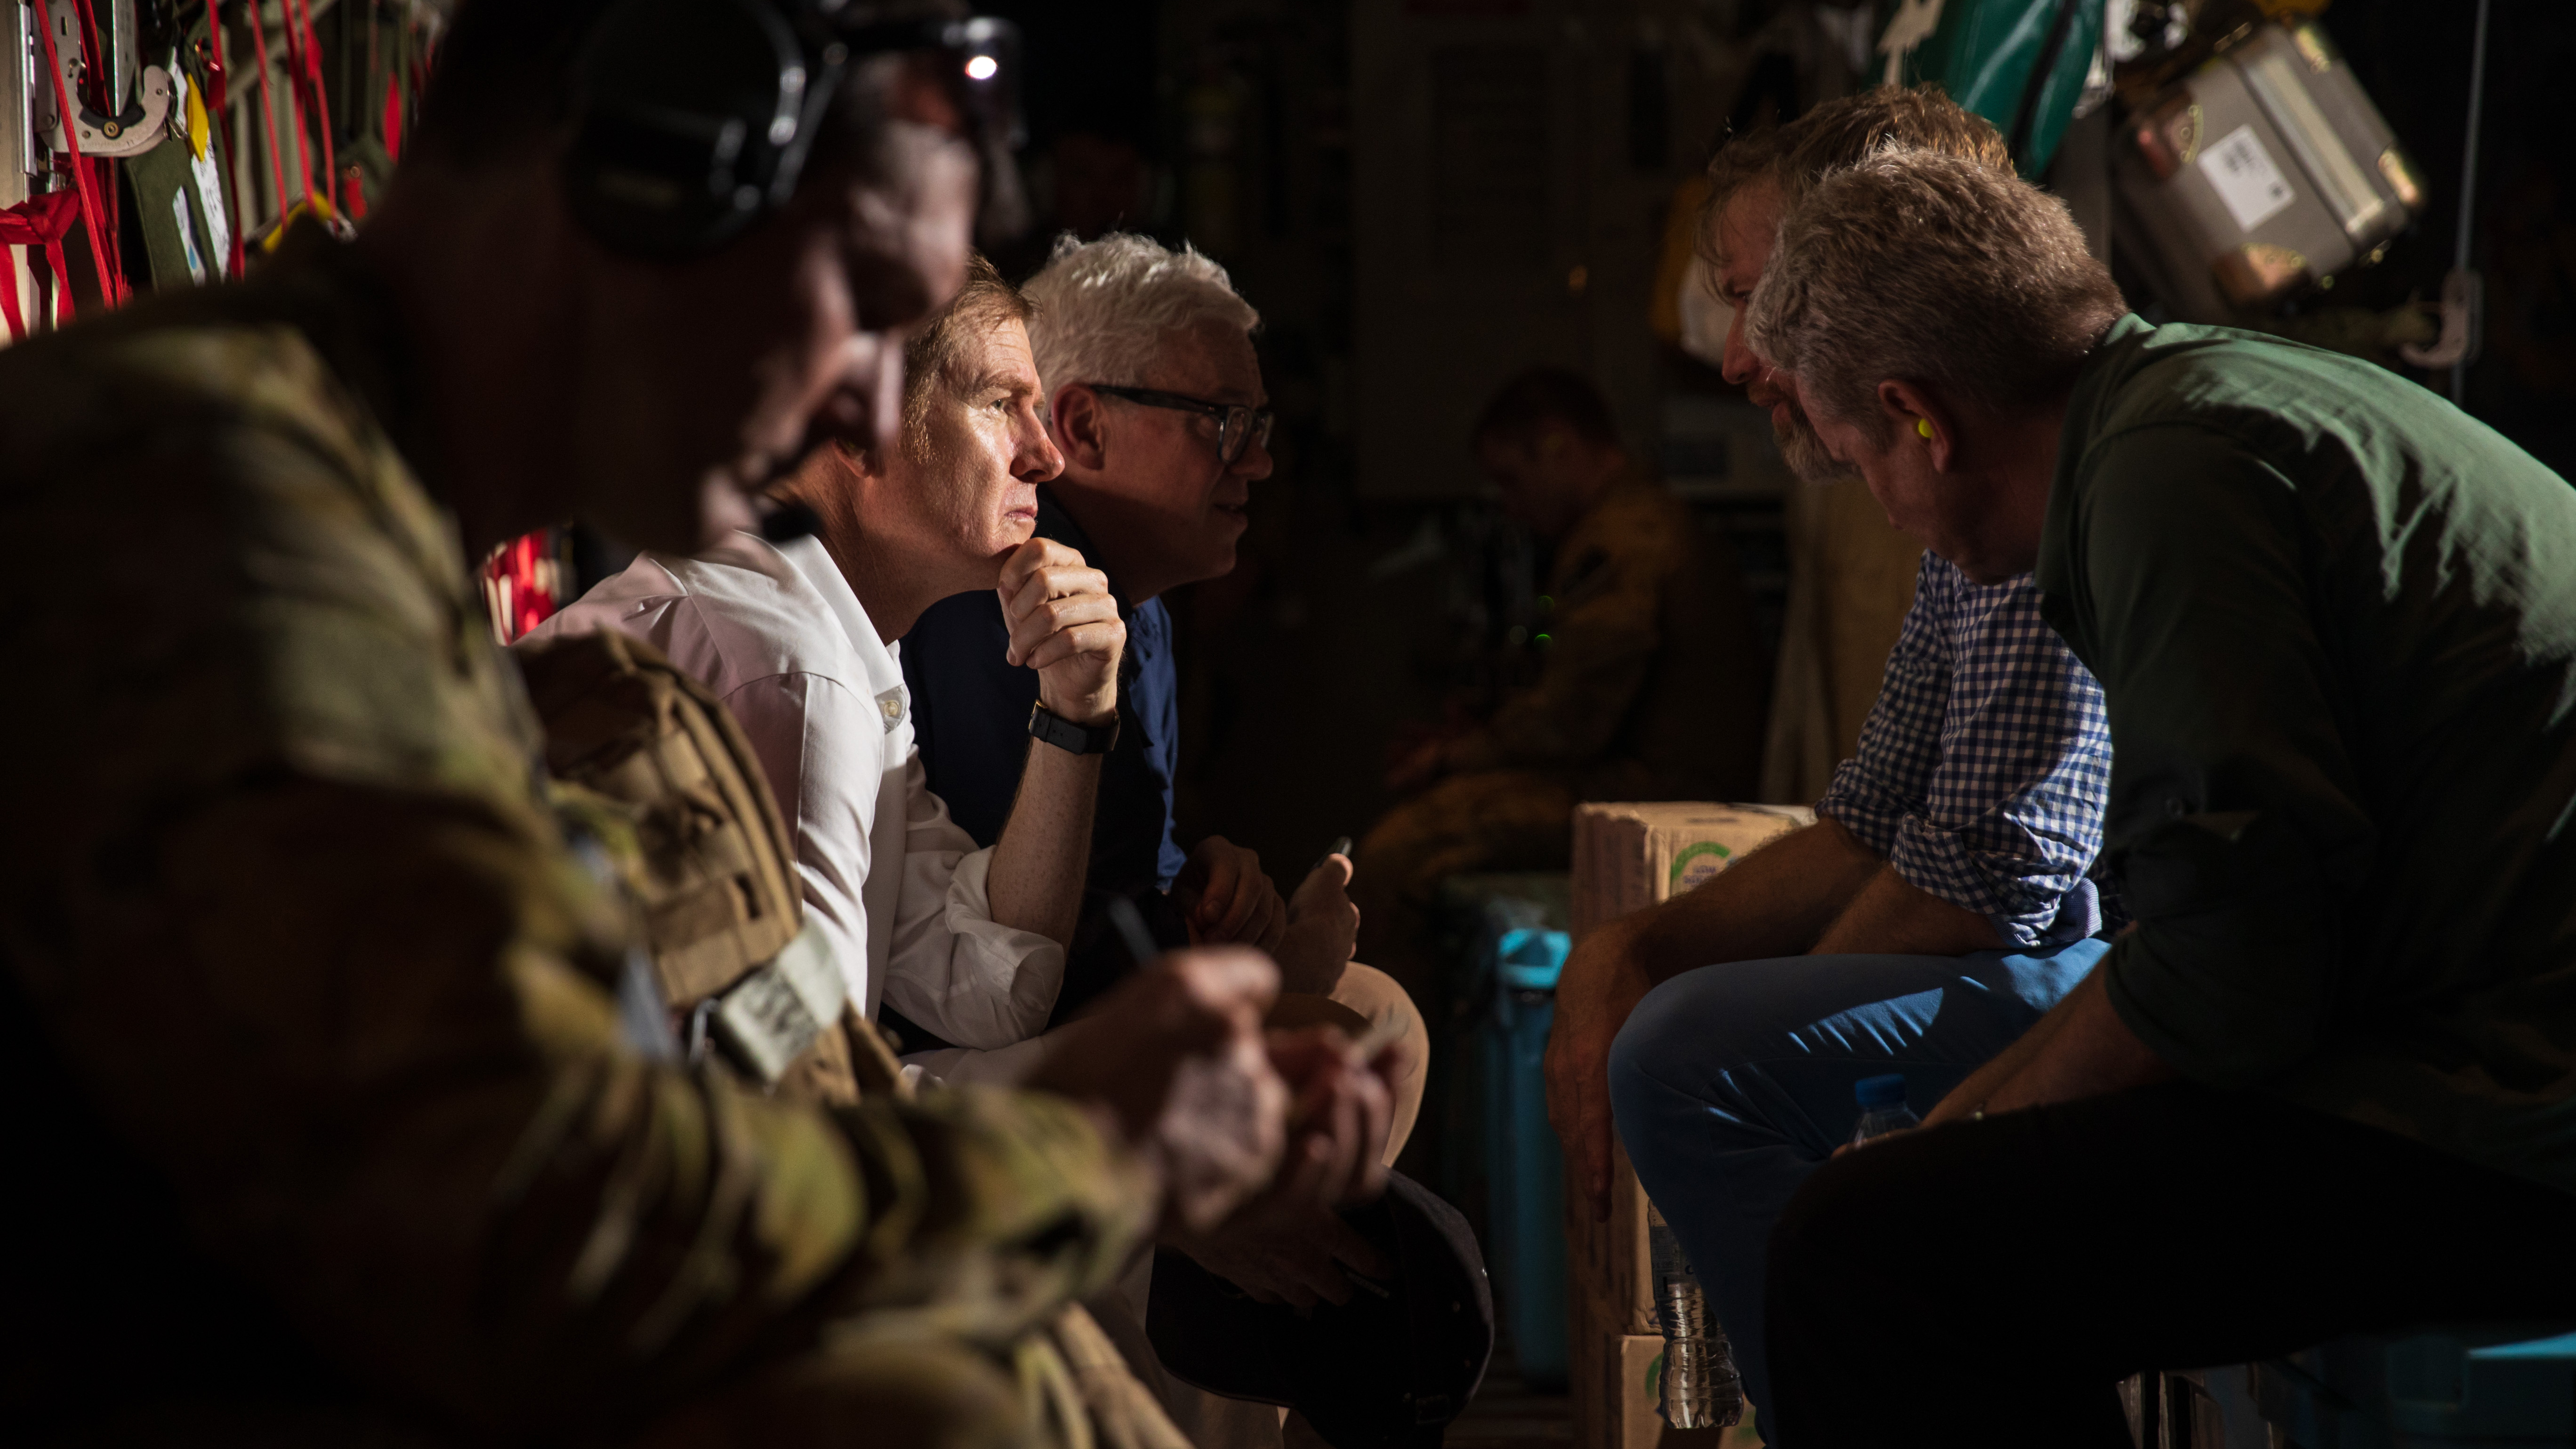 The first Australian Defence Force evacuation flight has departed Kabul with 26 persons on board.